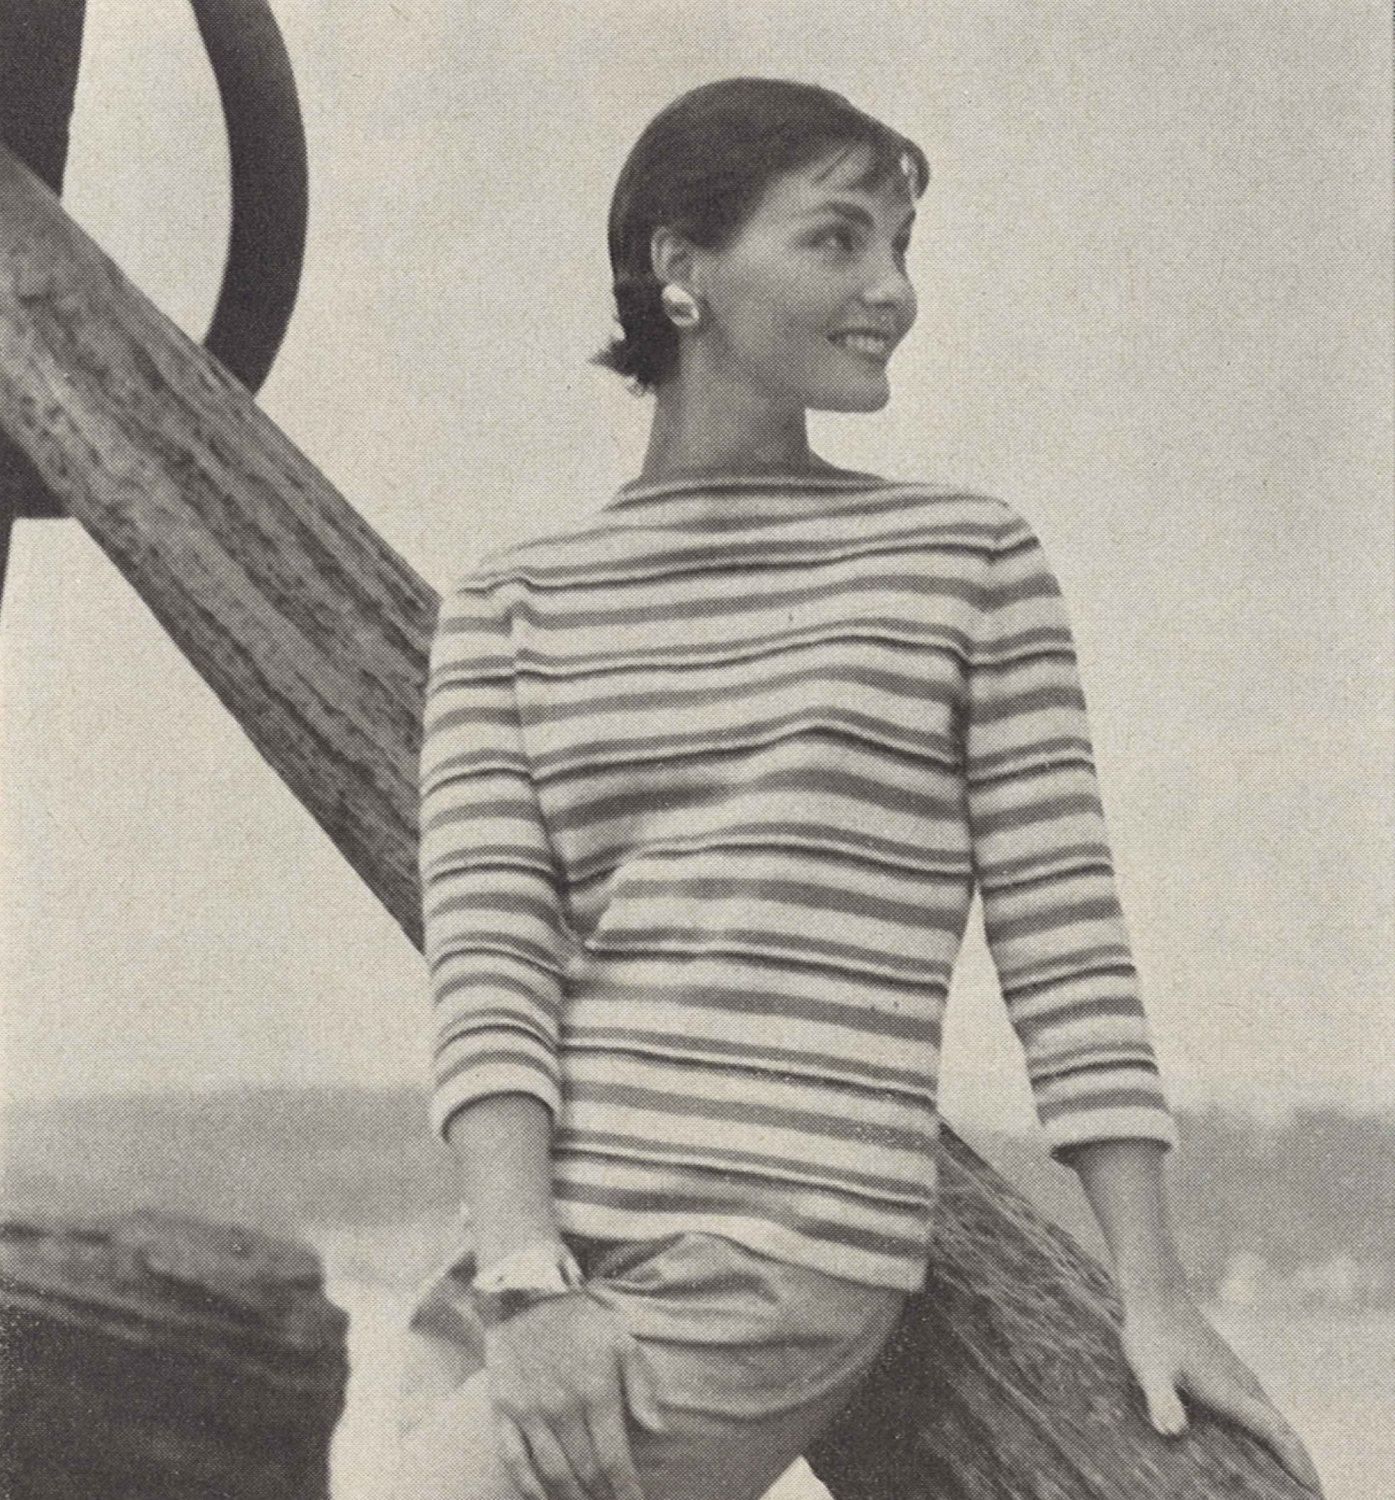 Audrey Stripes • 1950s Knitting Beach Boatneck Top Blouse • 50s ...